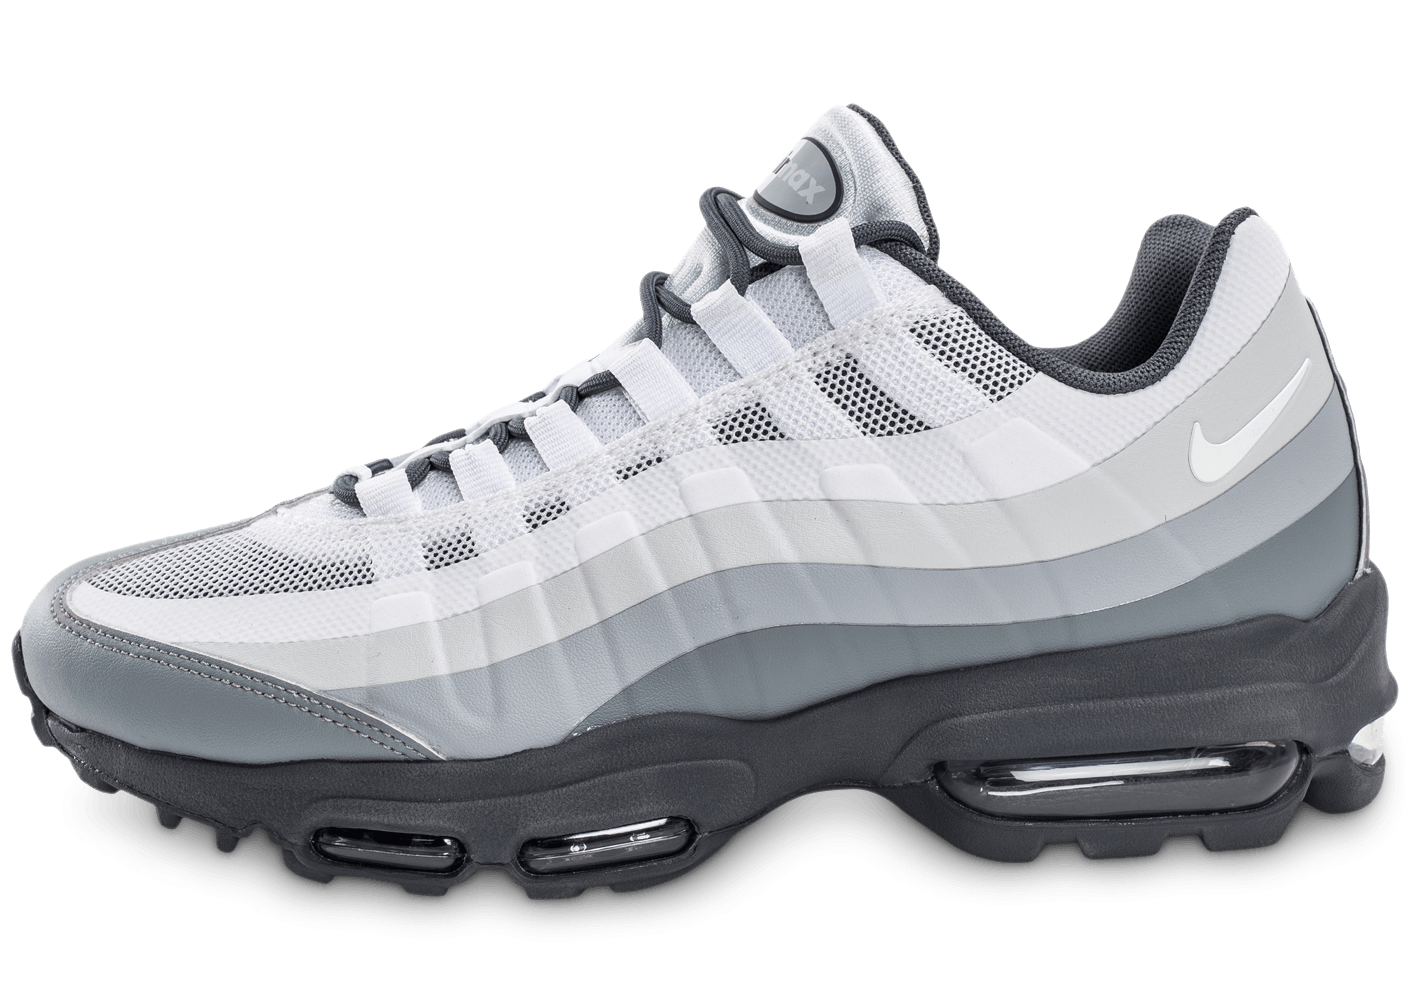 nike air max 95 ultra essential blanche et grise chaussures homme chausport. Black Bedroom Furniture Sets. Home Design Ideas